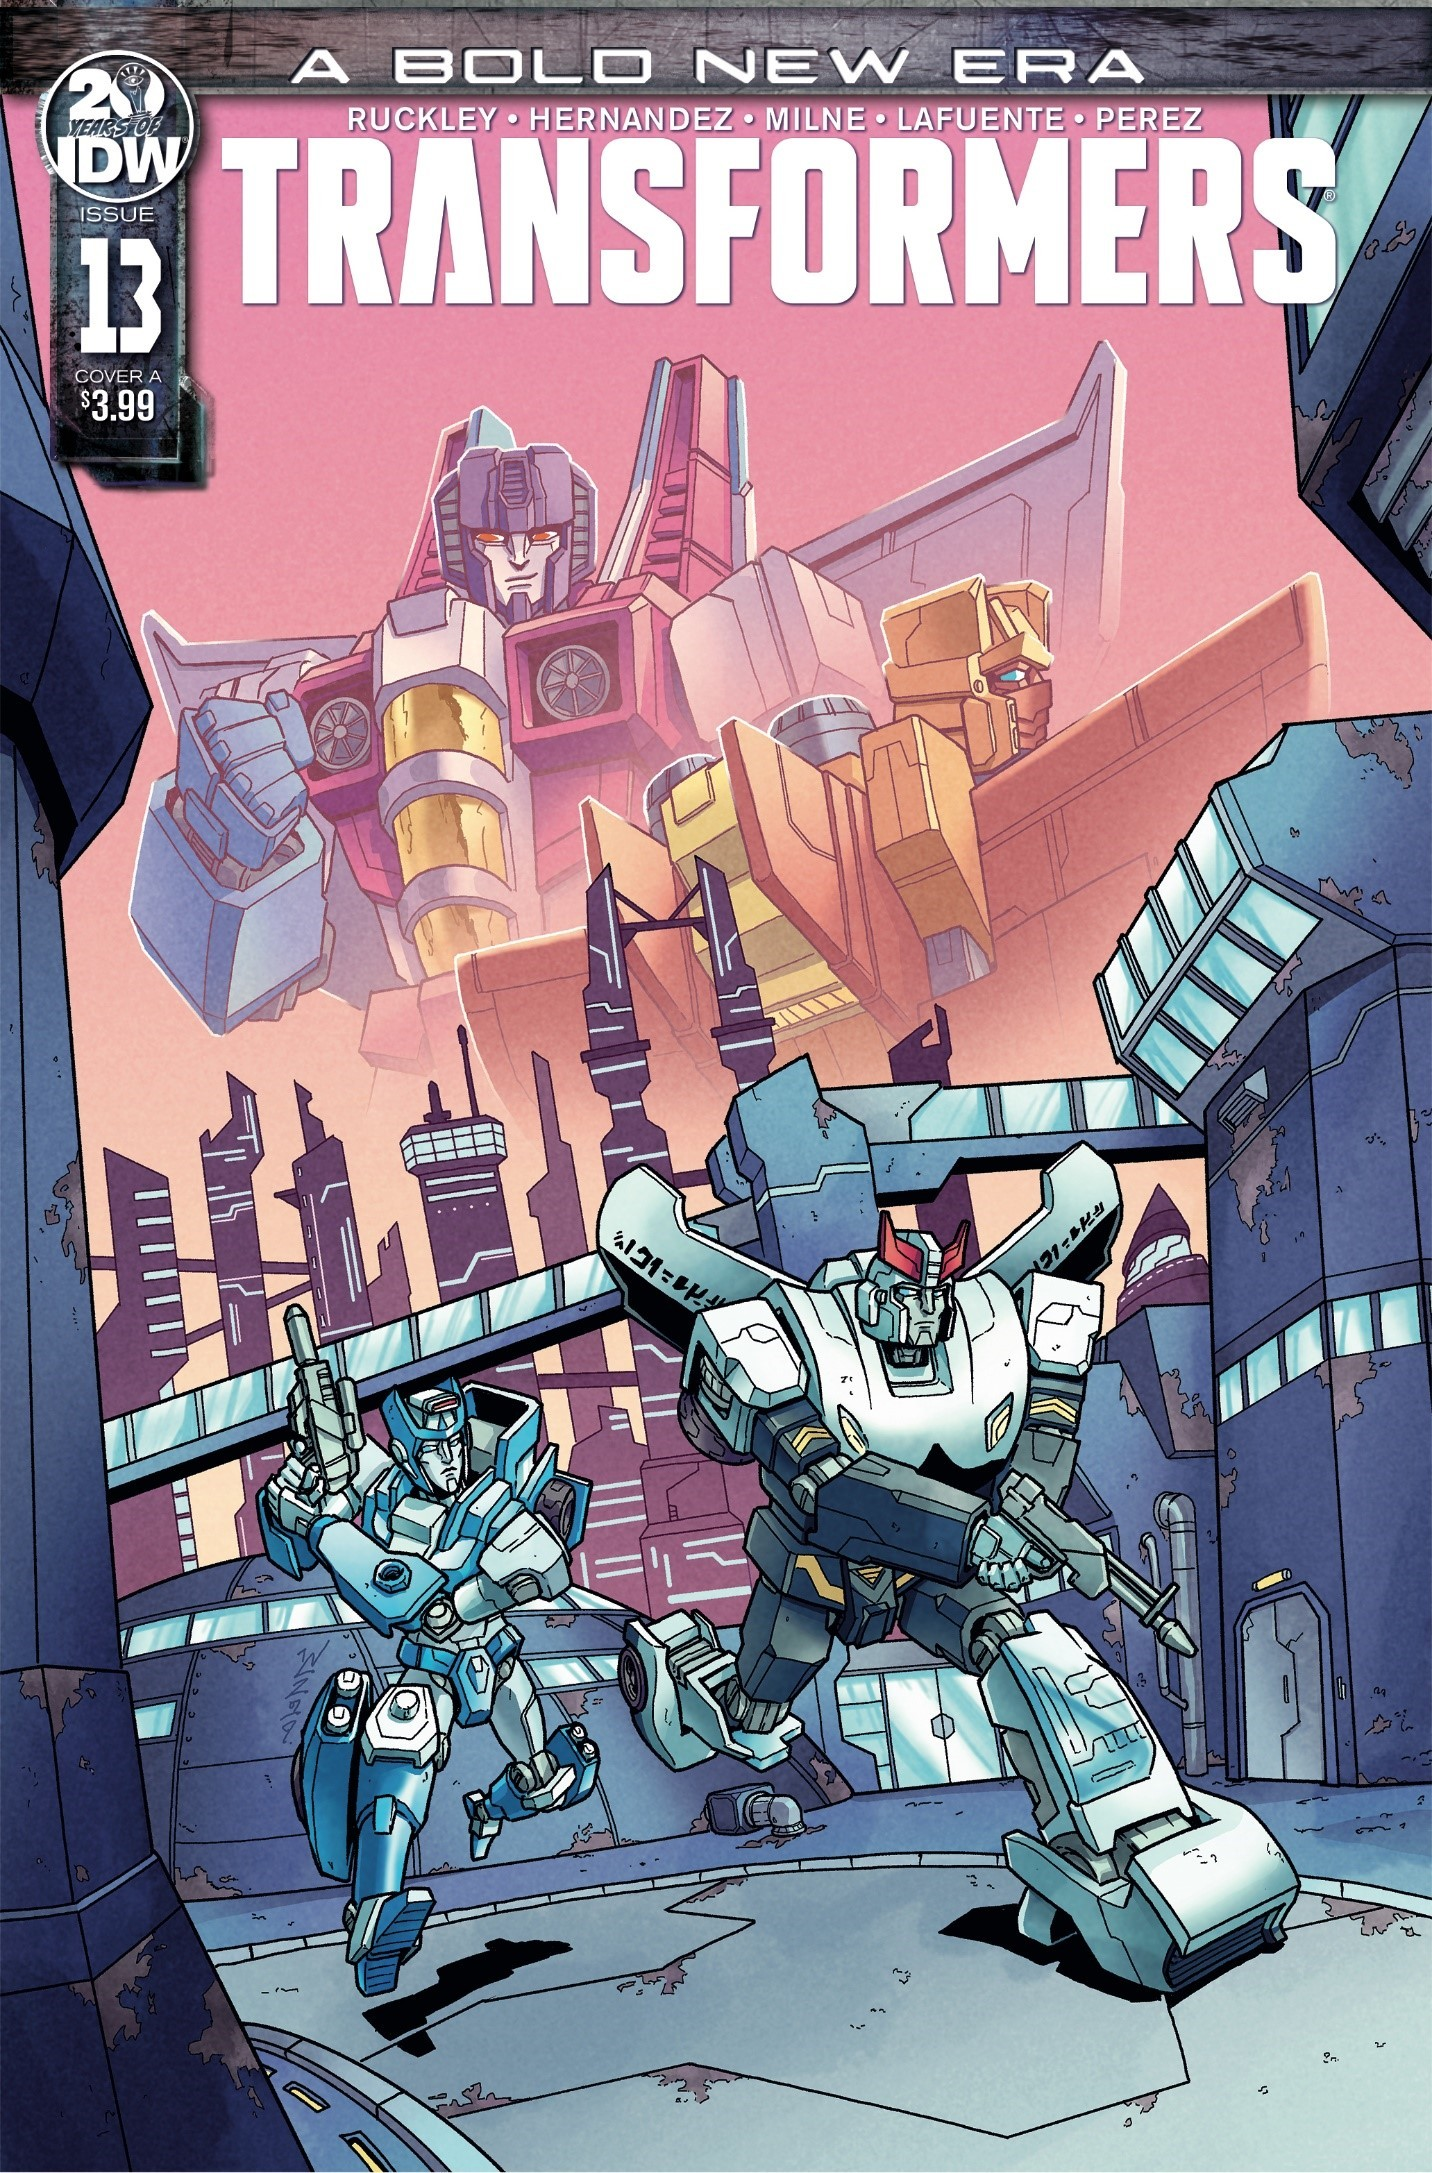 Transformers News: iTunes Three Page Preview for IDW's Transformers Issue 13